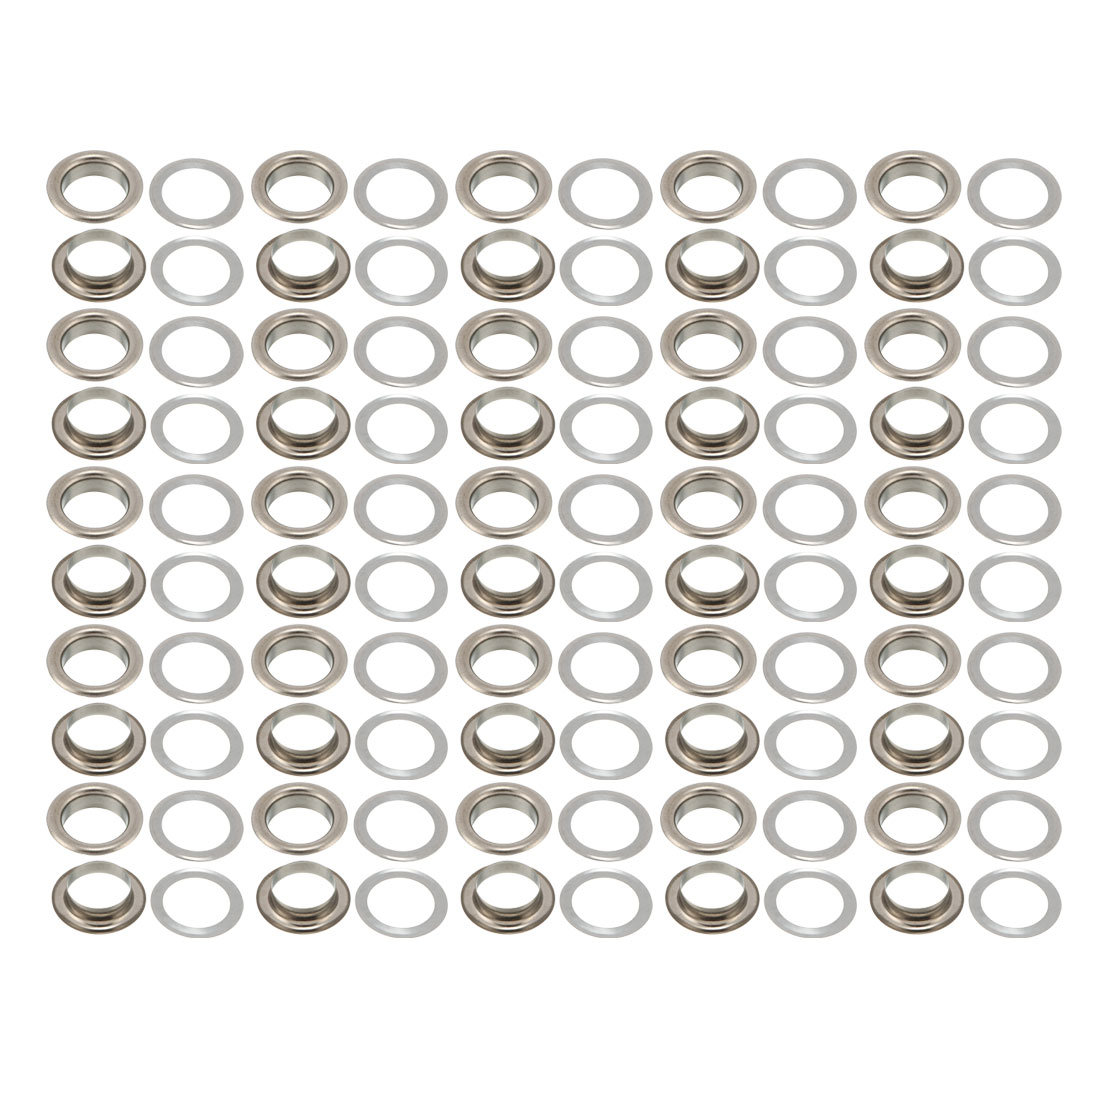 100Pcs 10mm Eyelet 15mm Flange Dia 4mm Height Brass Grommet Black w Washer